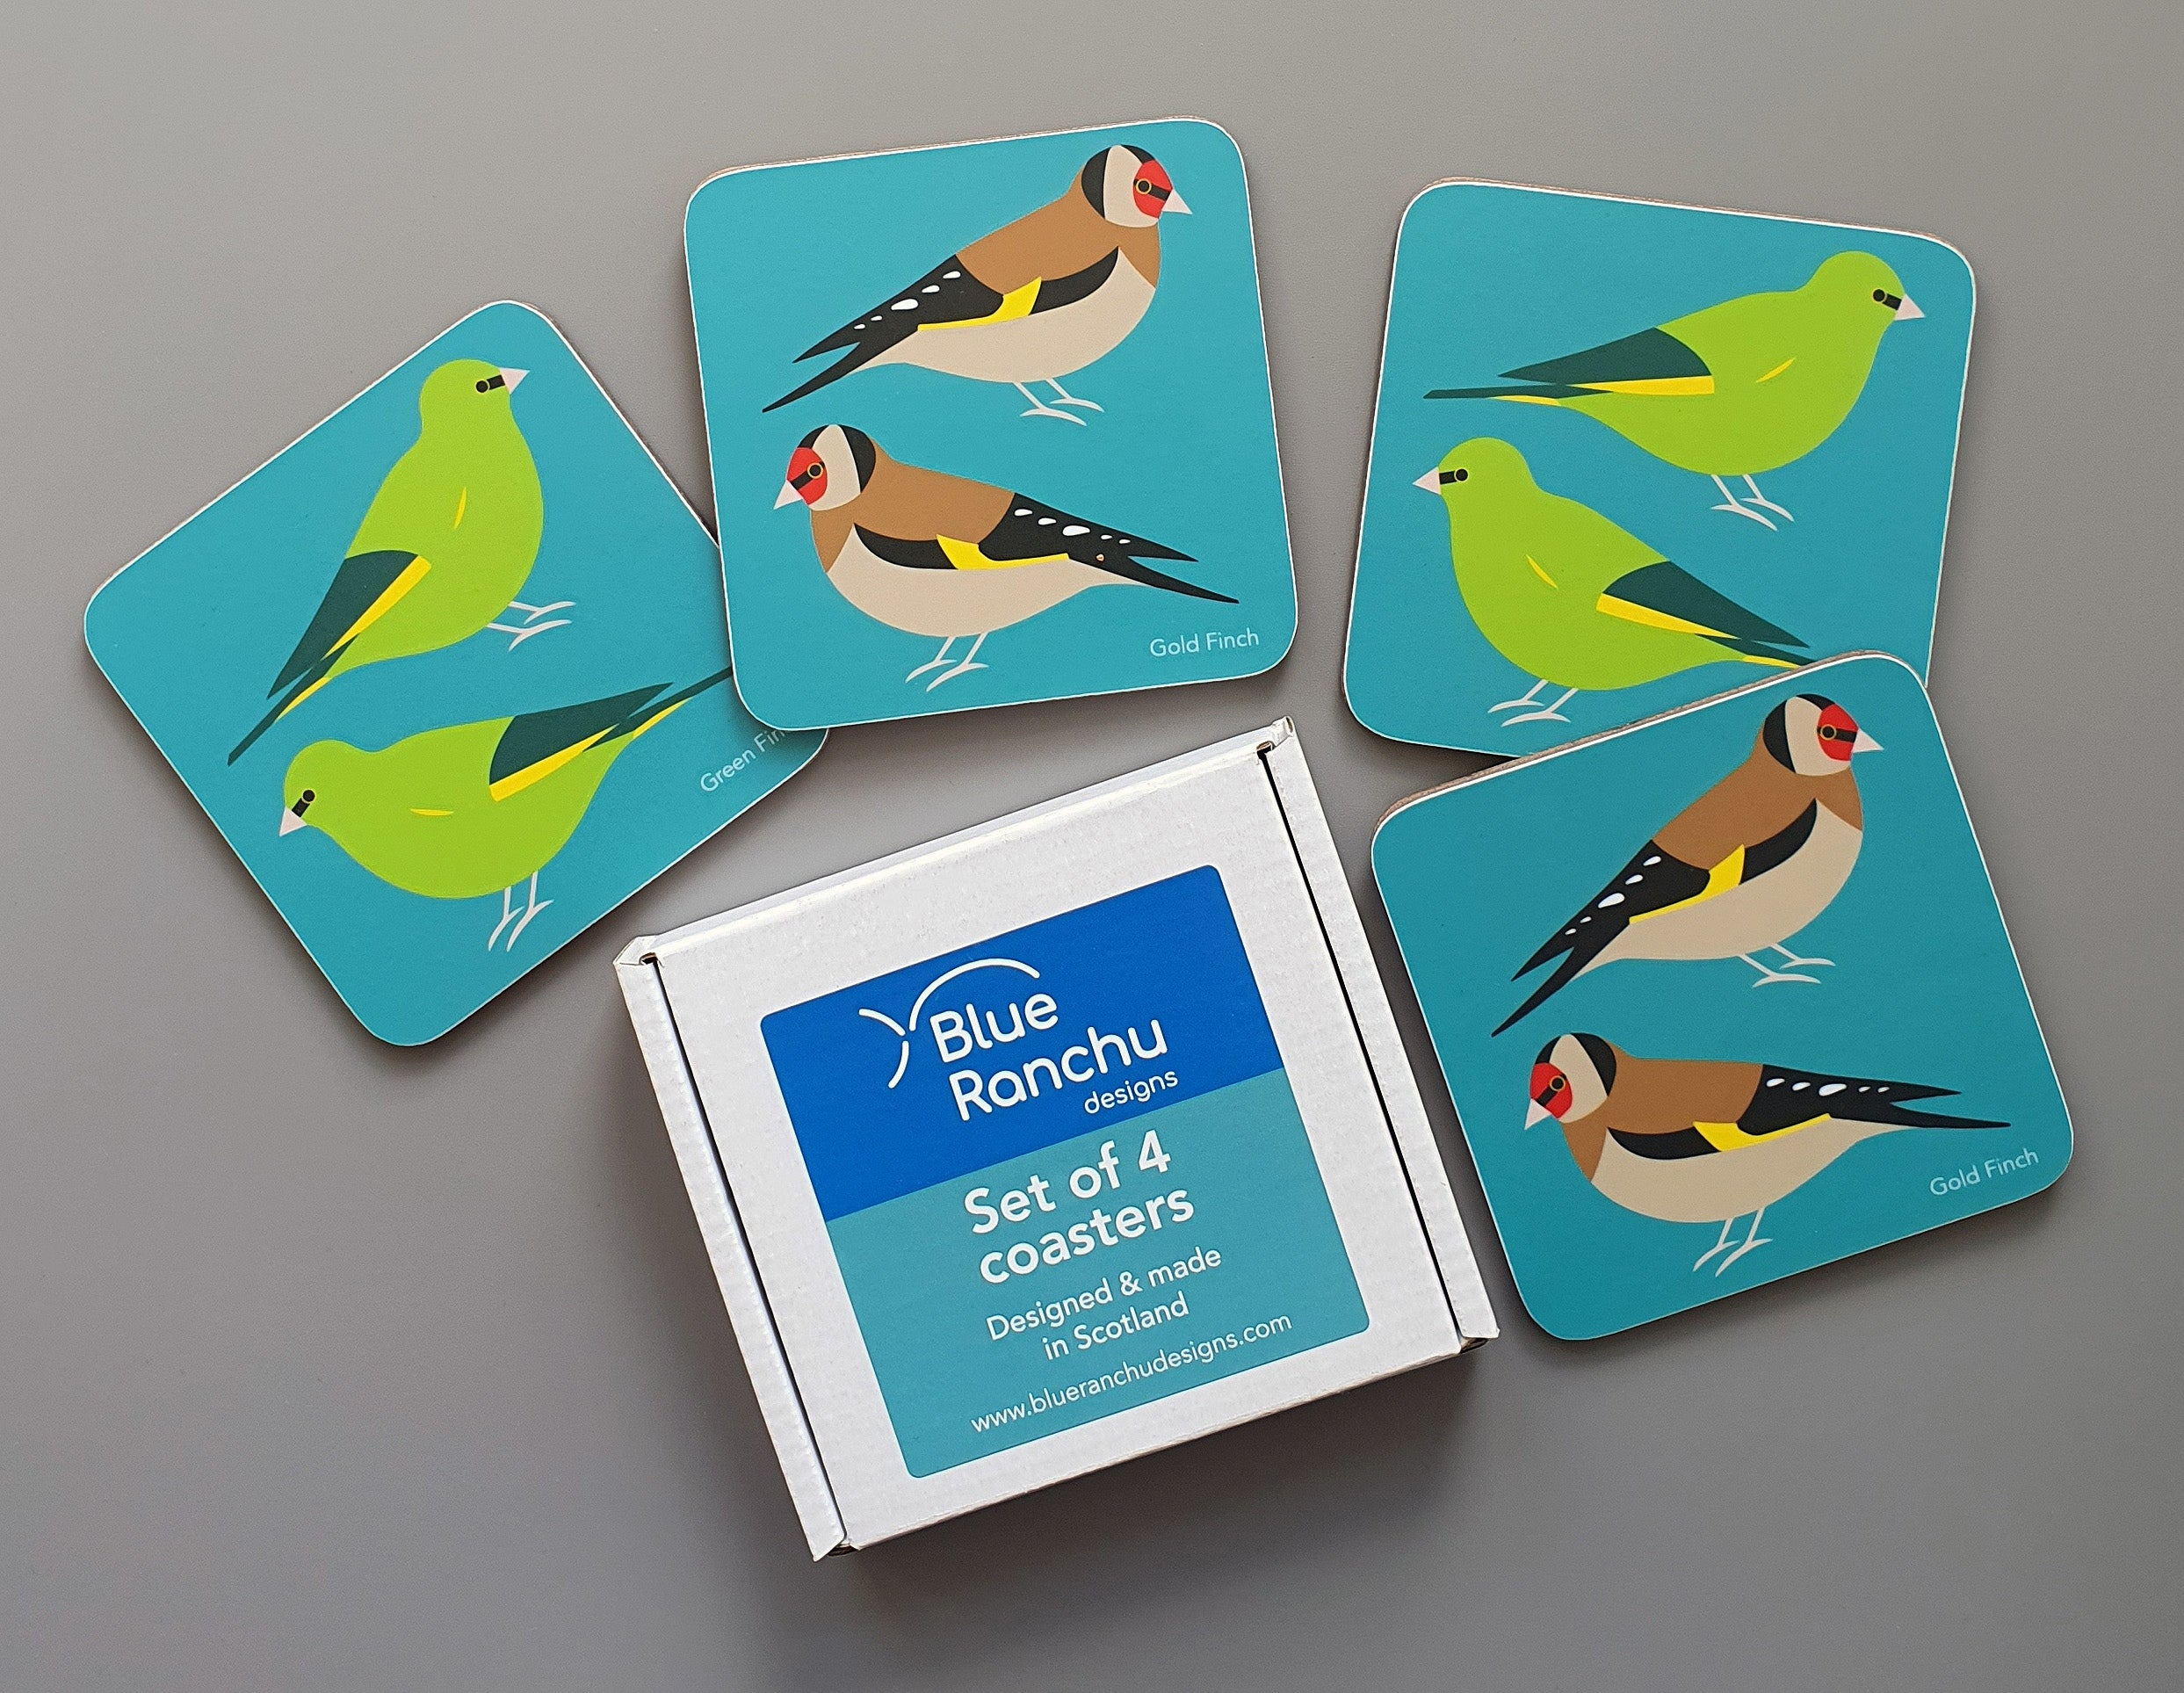 Green Finch and Gold Finch coaster set in cardboard gift box